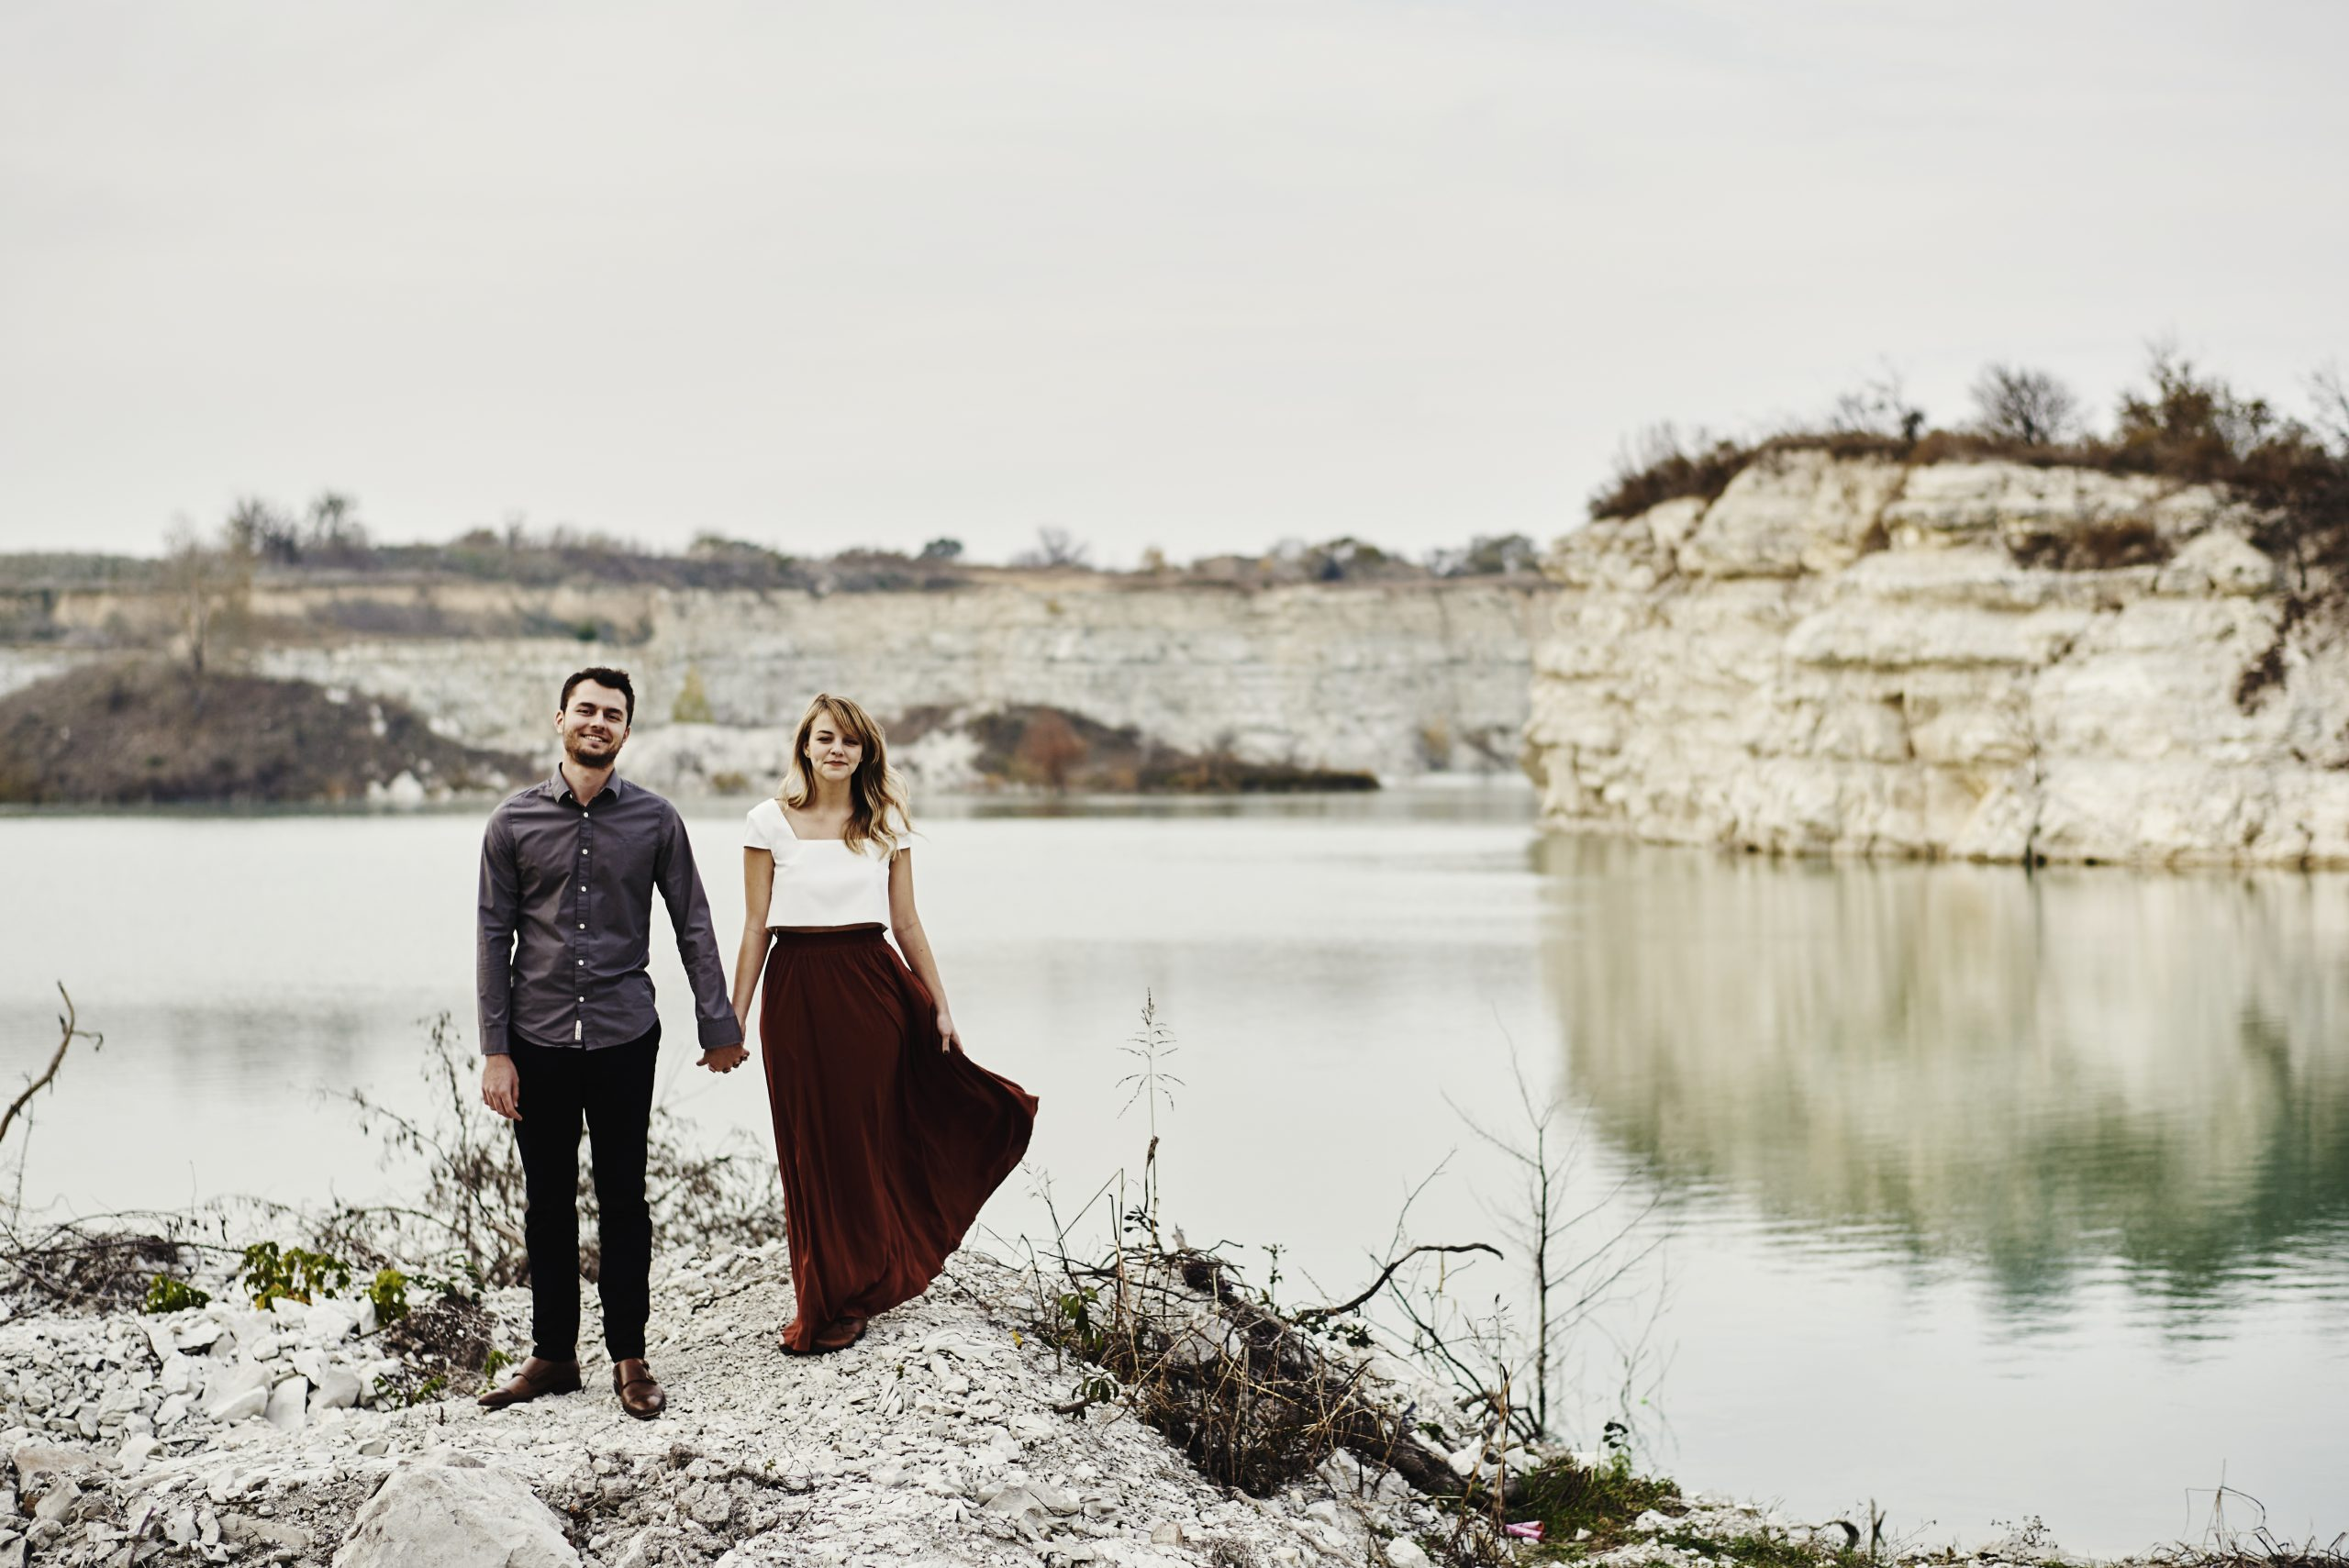 Outdoor engagement session - texas proposal - moody photography - moody proposal session - stephanie rogers photography